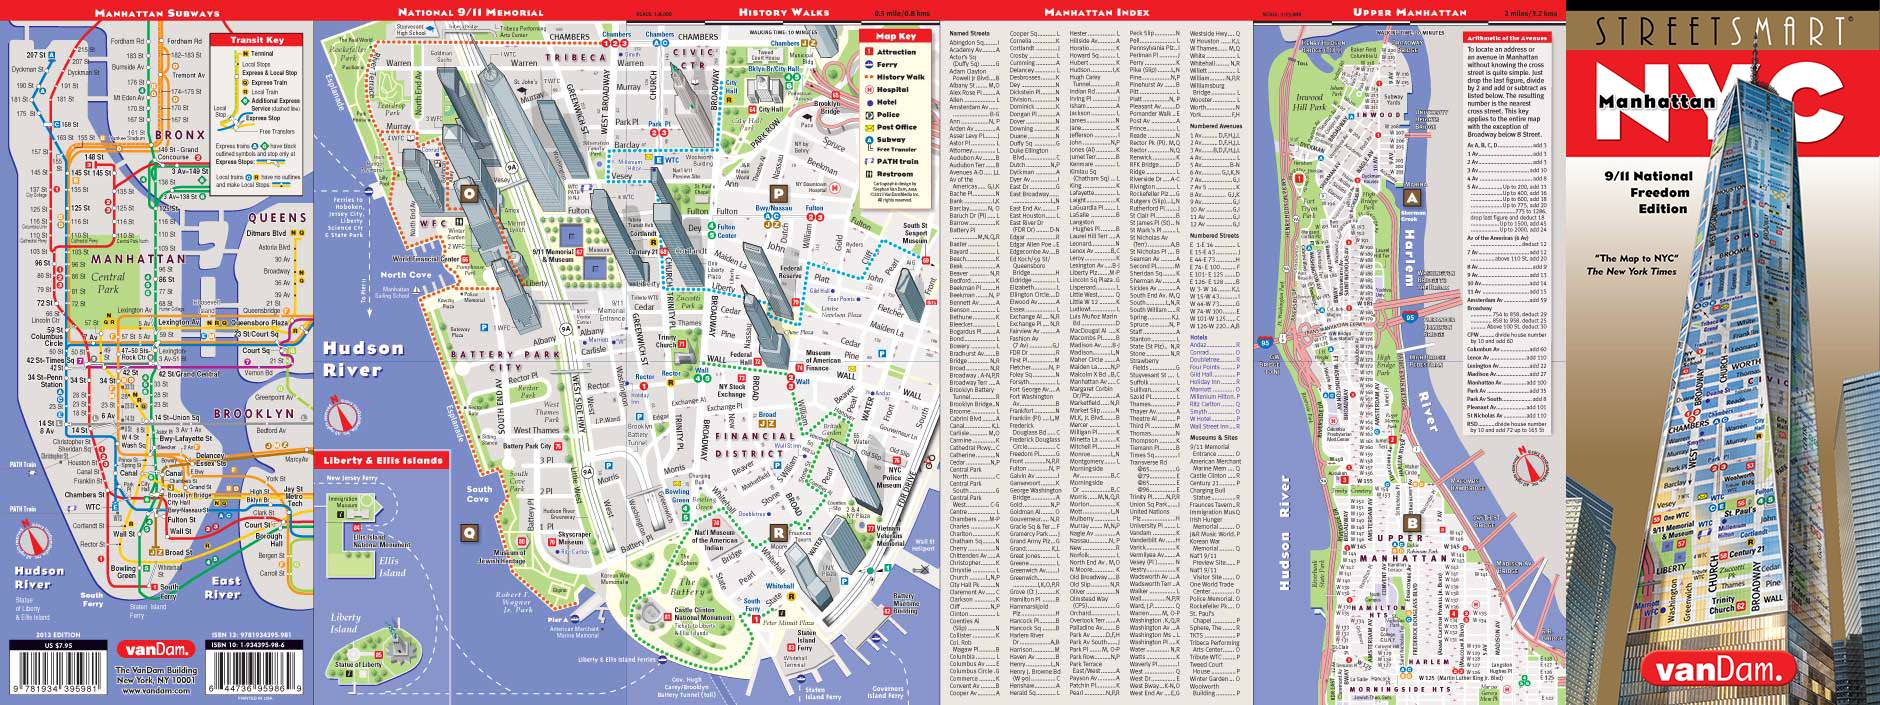 New York City Map By VanDam NYC  Mem StreetSmart Map City - New york map city